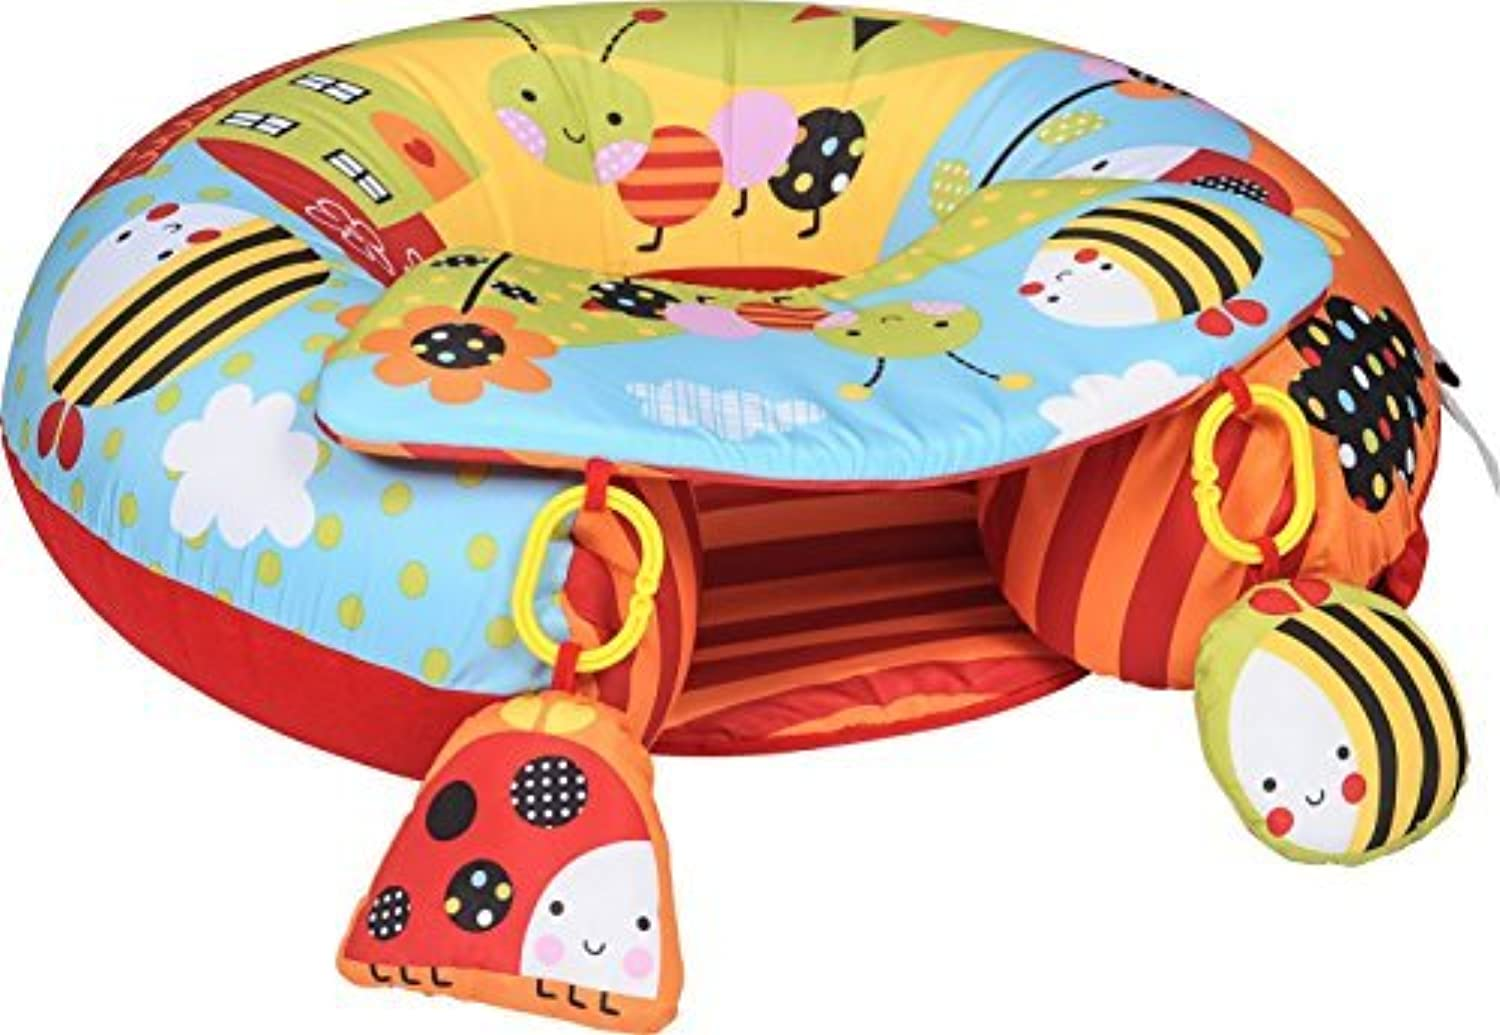 Red Kite - Sit Me Up - Garden Gang - Inflatable Ring with play tray by Red Kite